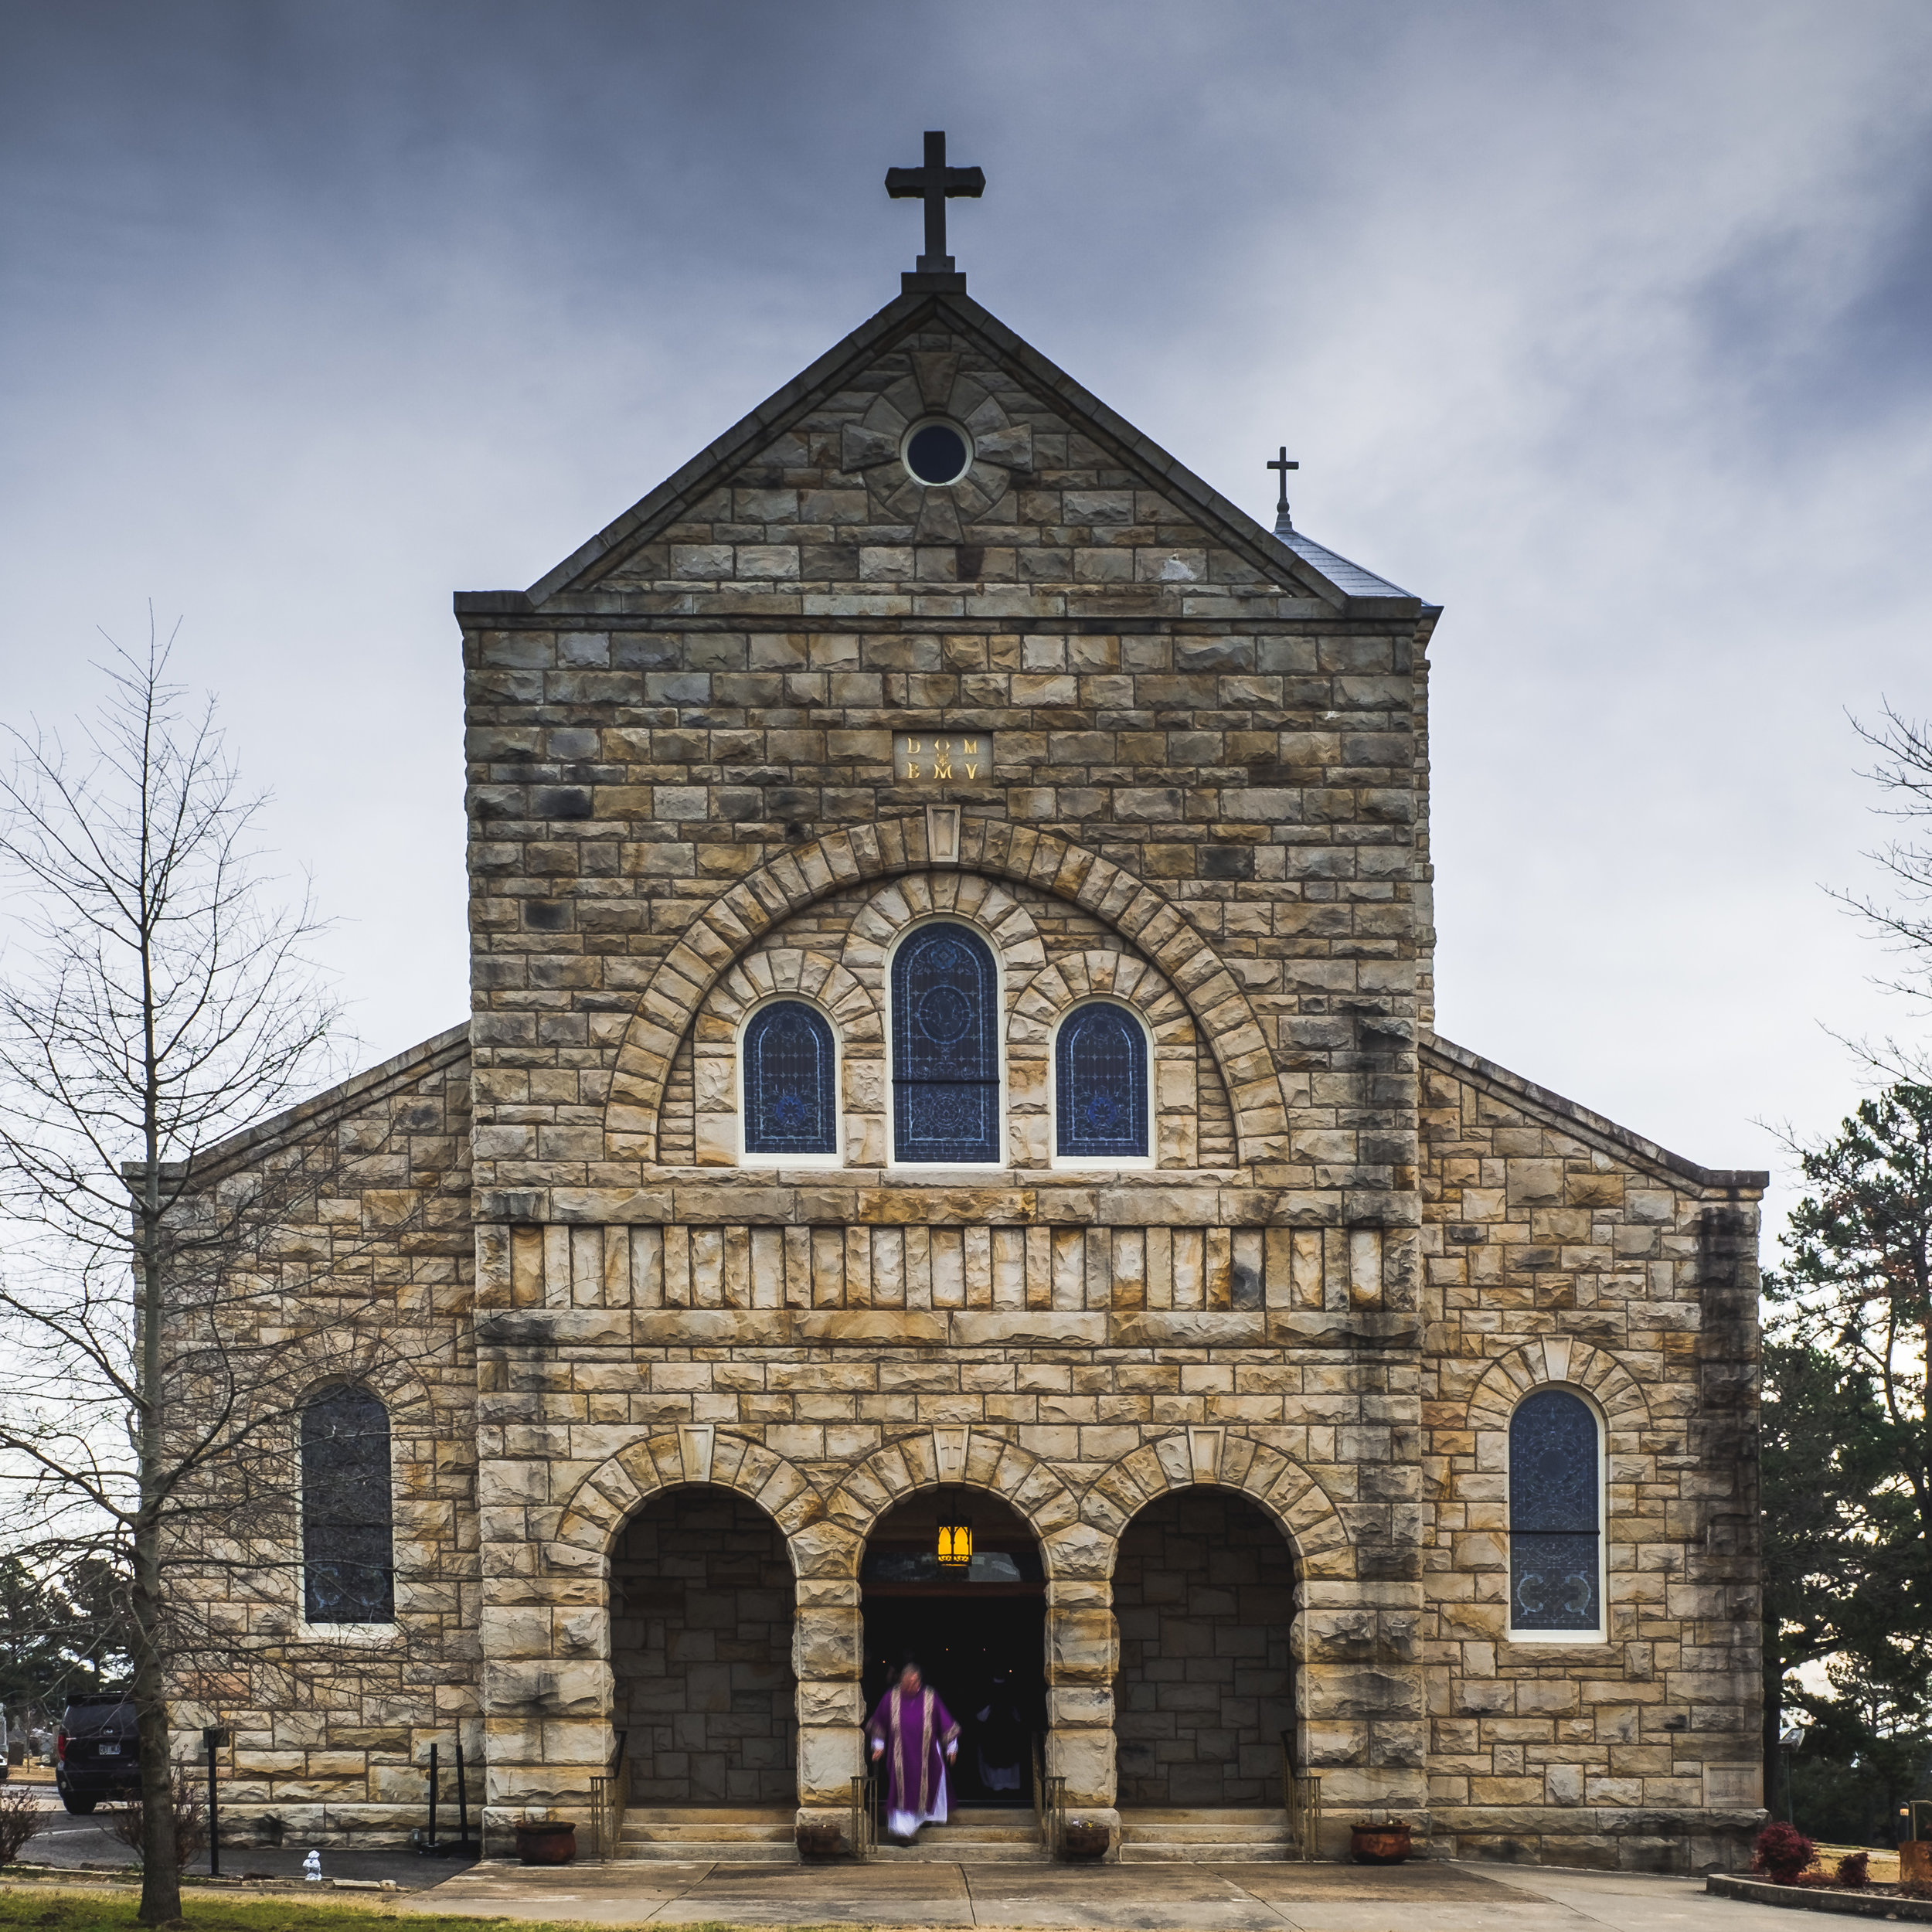 St. Mary's Catholic Church in Altus, Arkansas.